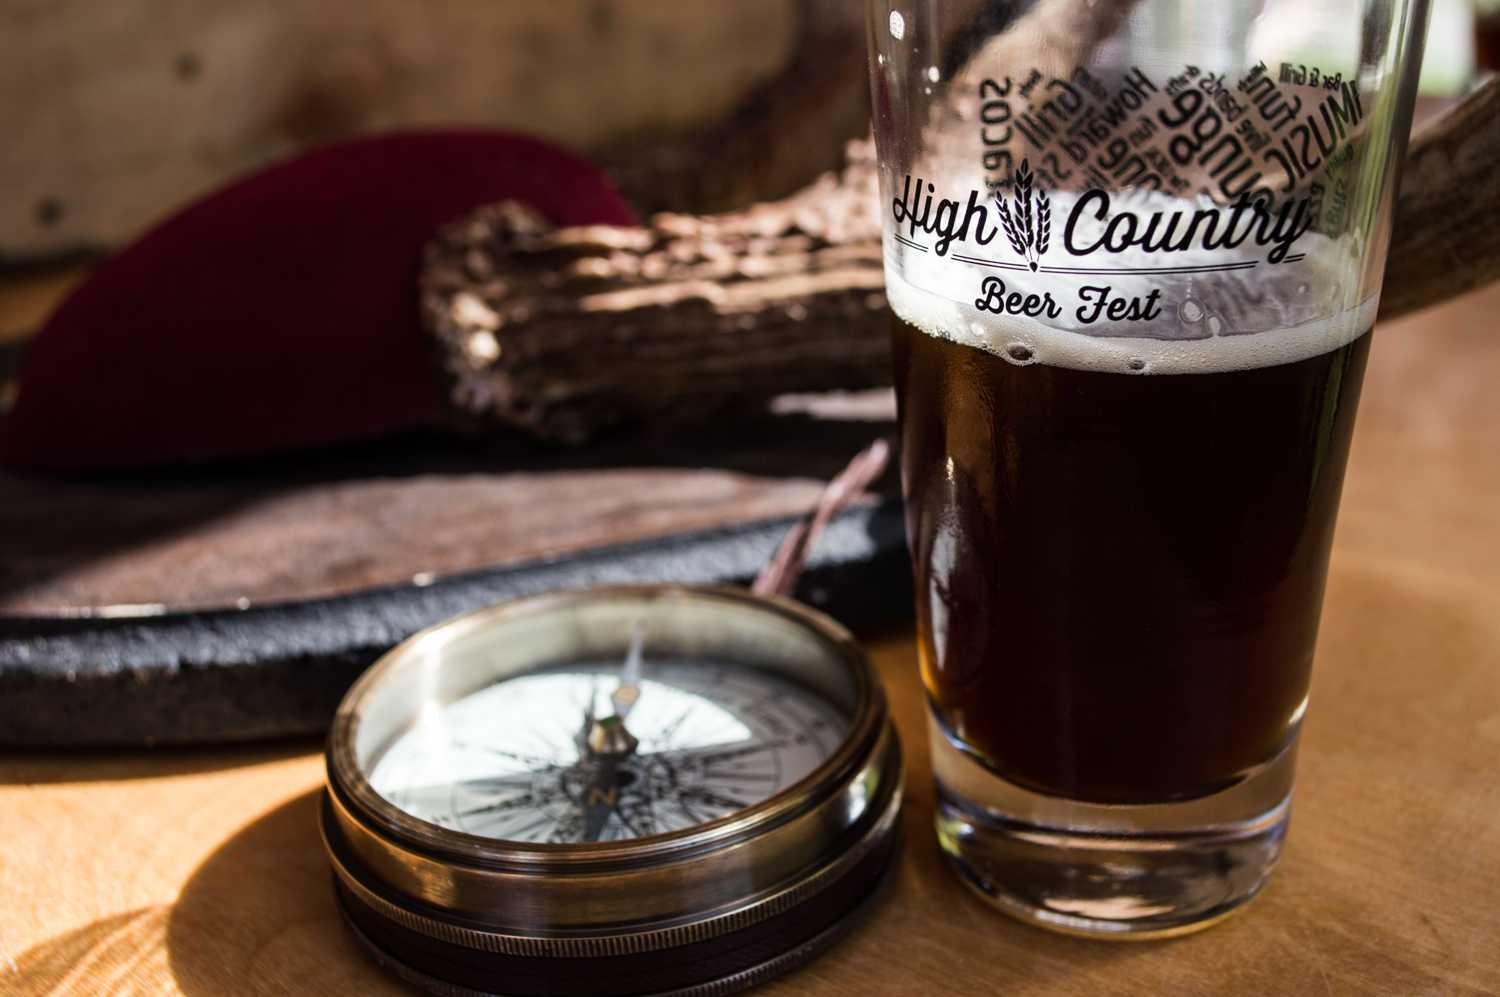 High Country Beer Fest returns to Watauga County